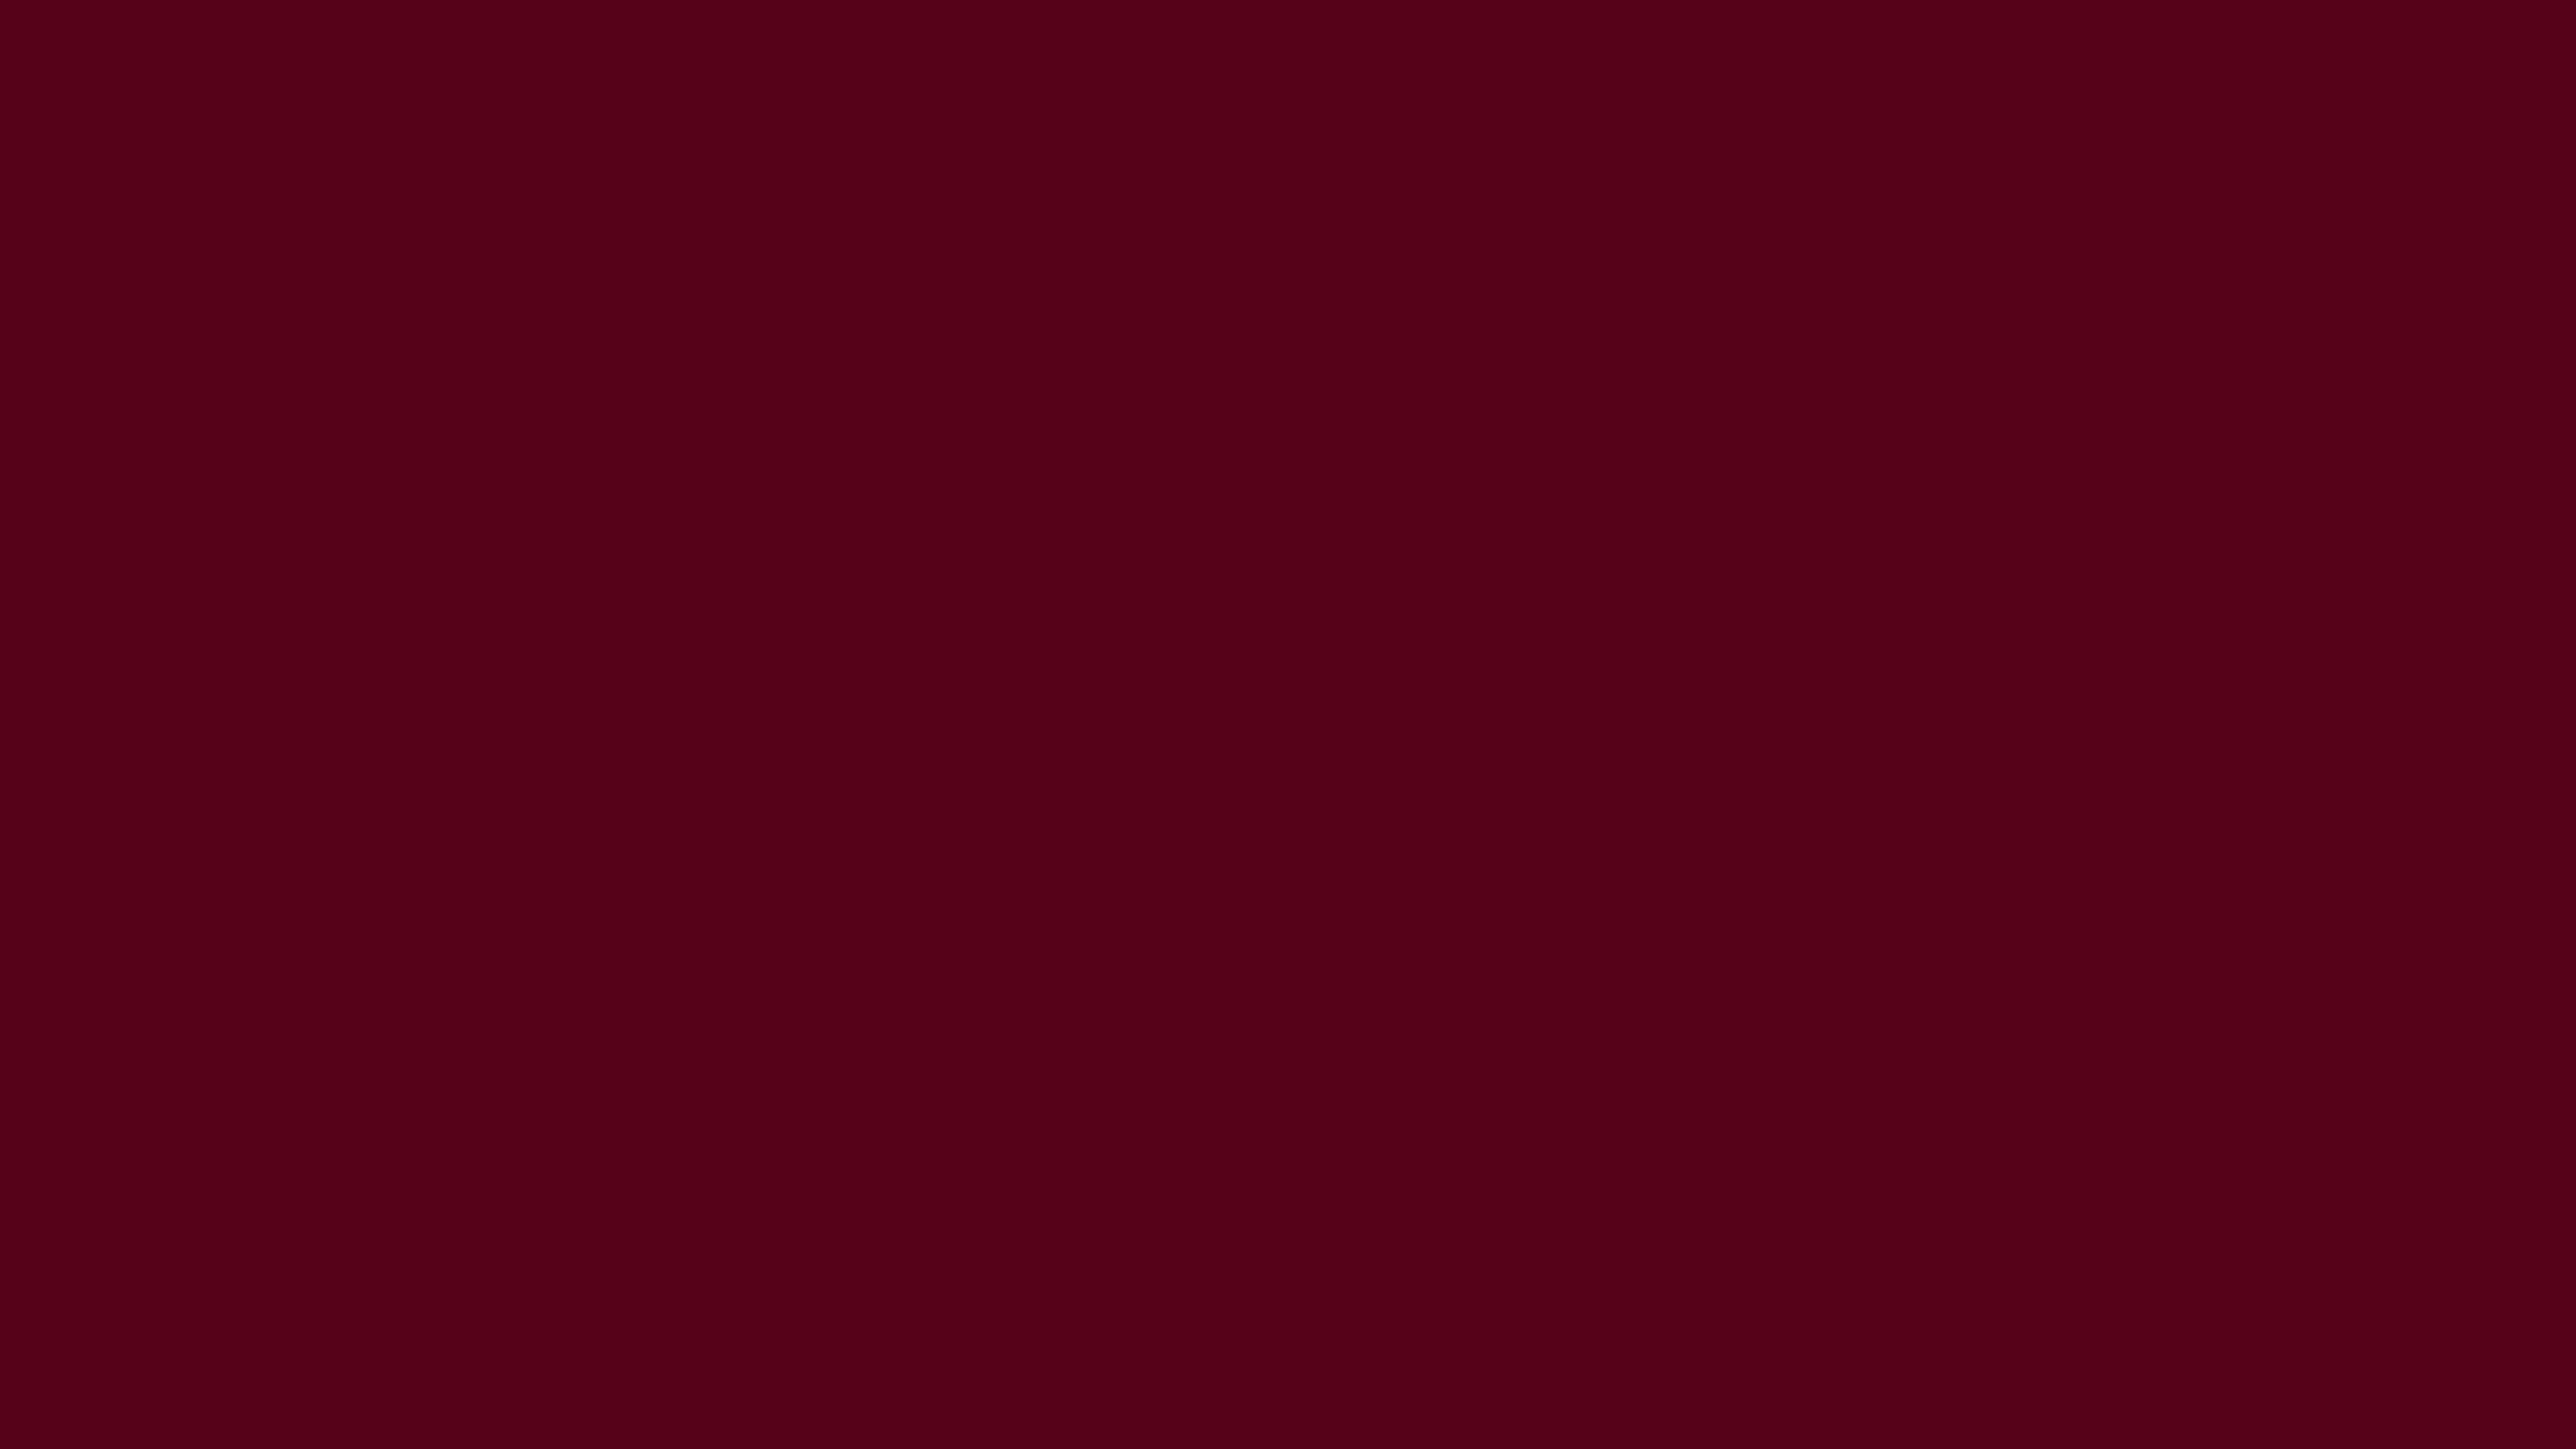 3840x2160 Dark Scarlet Solid Color Background